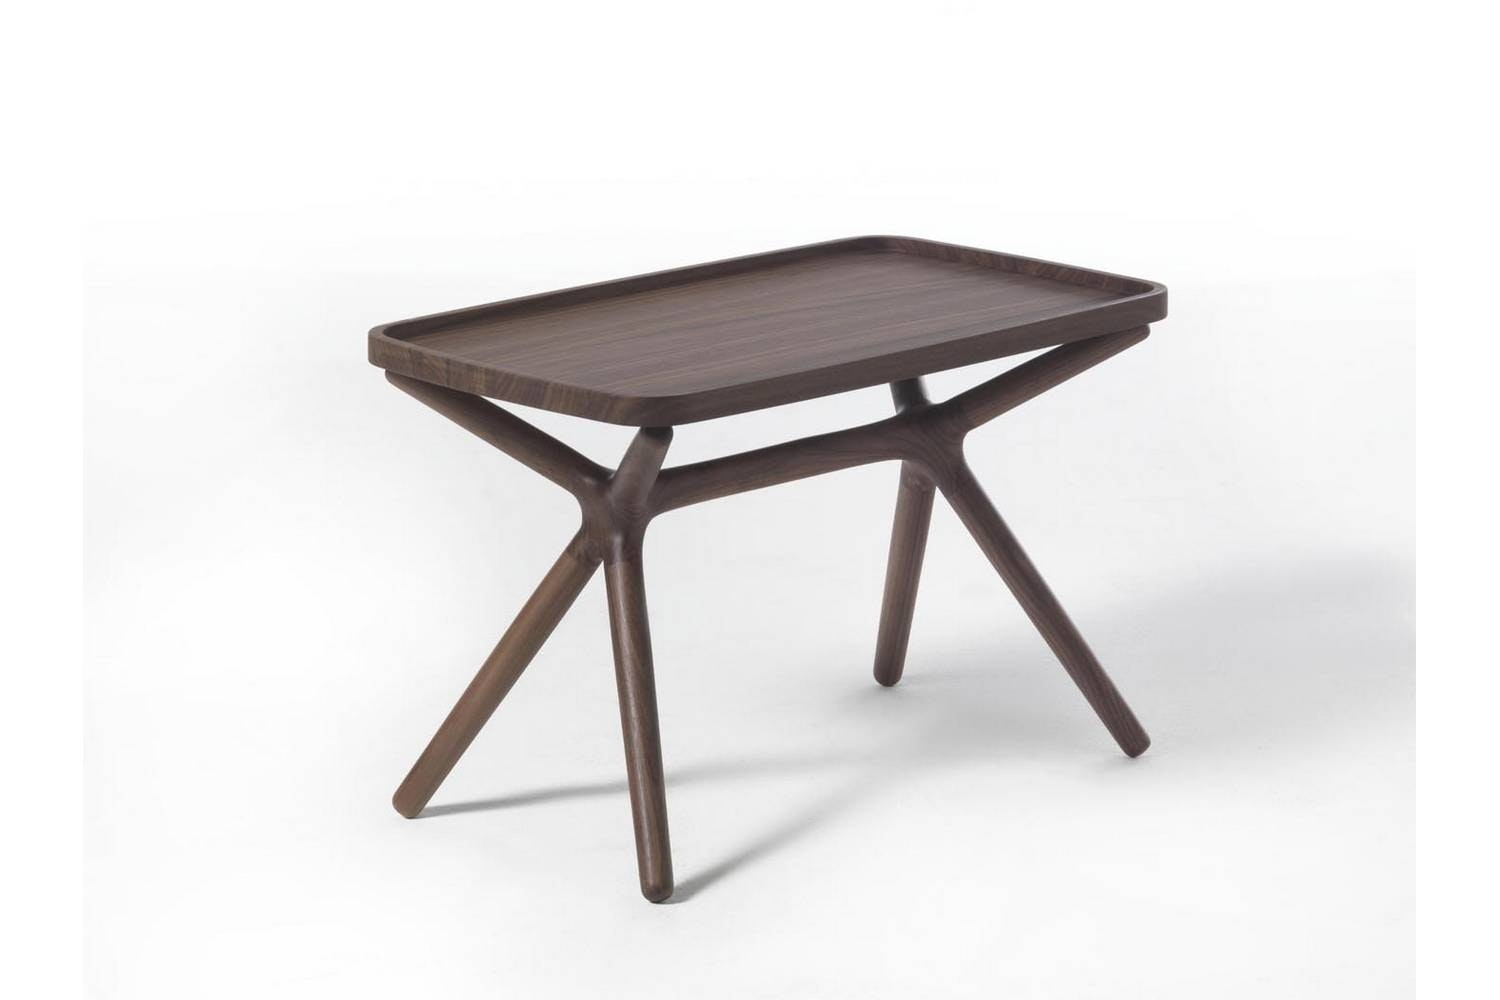 Ics Side Table by M. Fossati for Porada